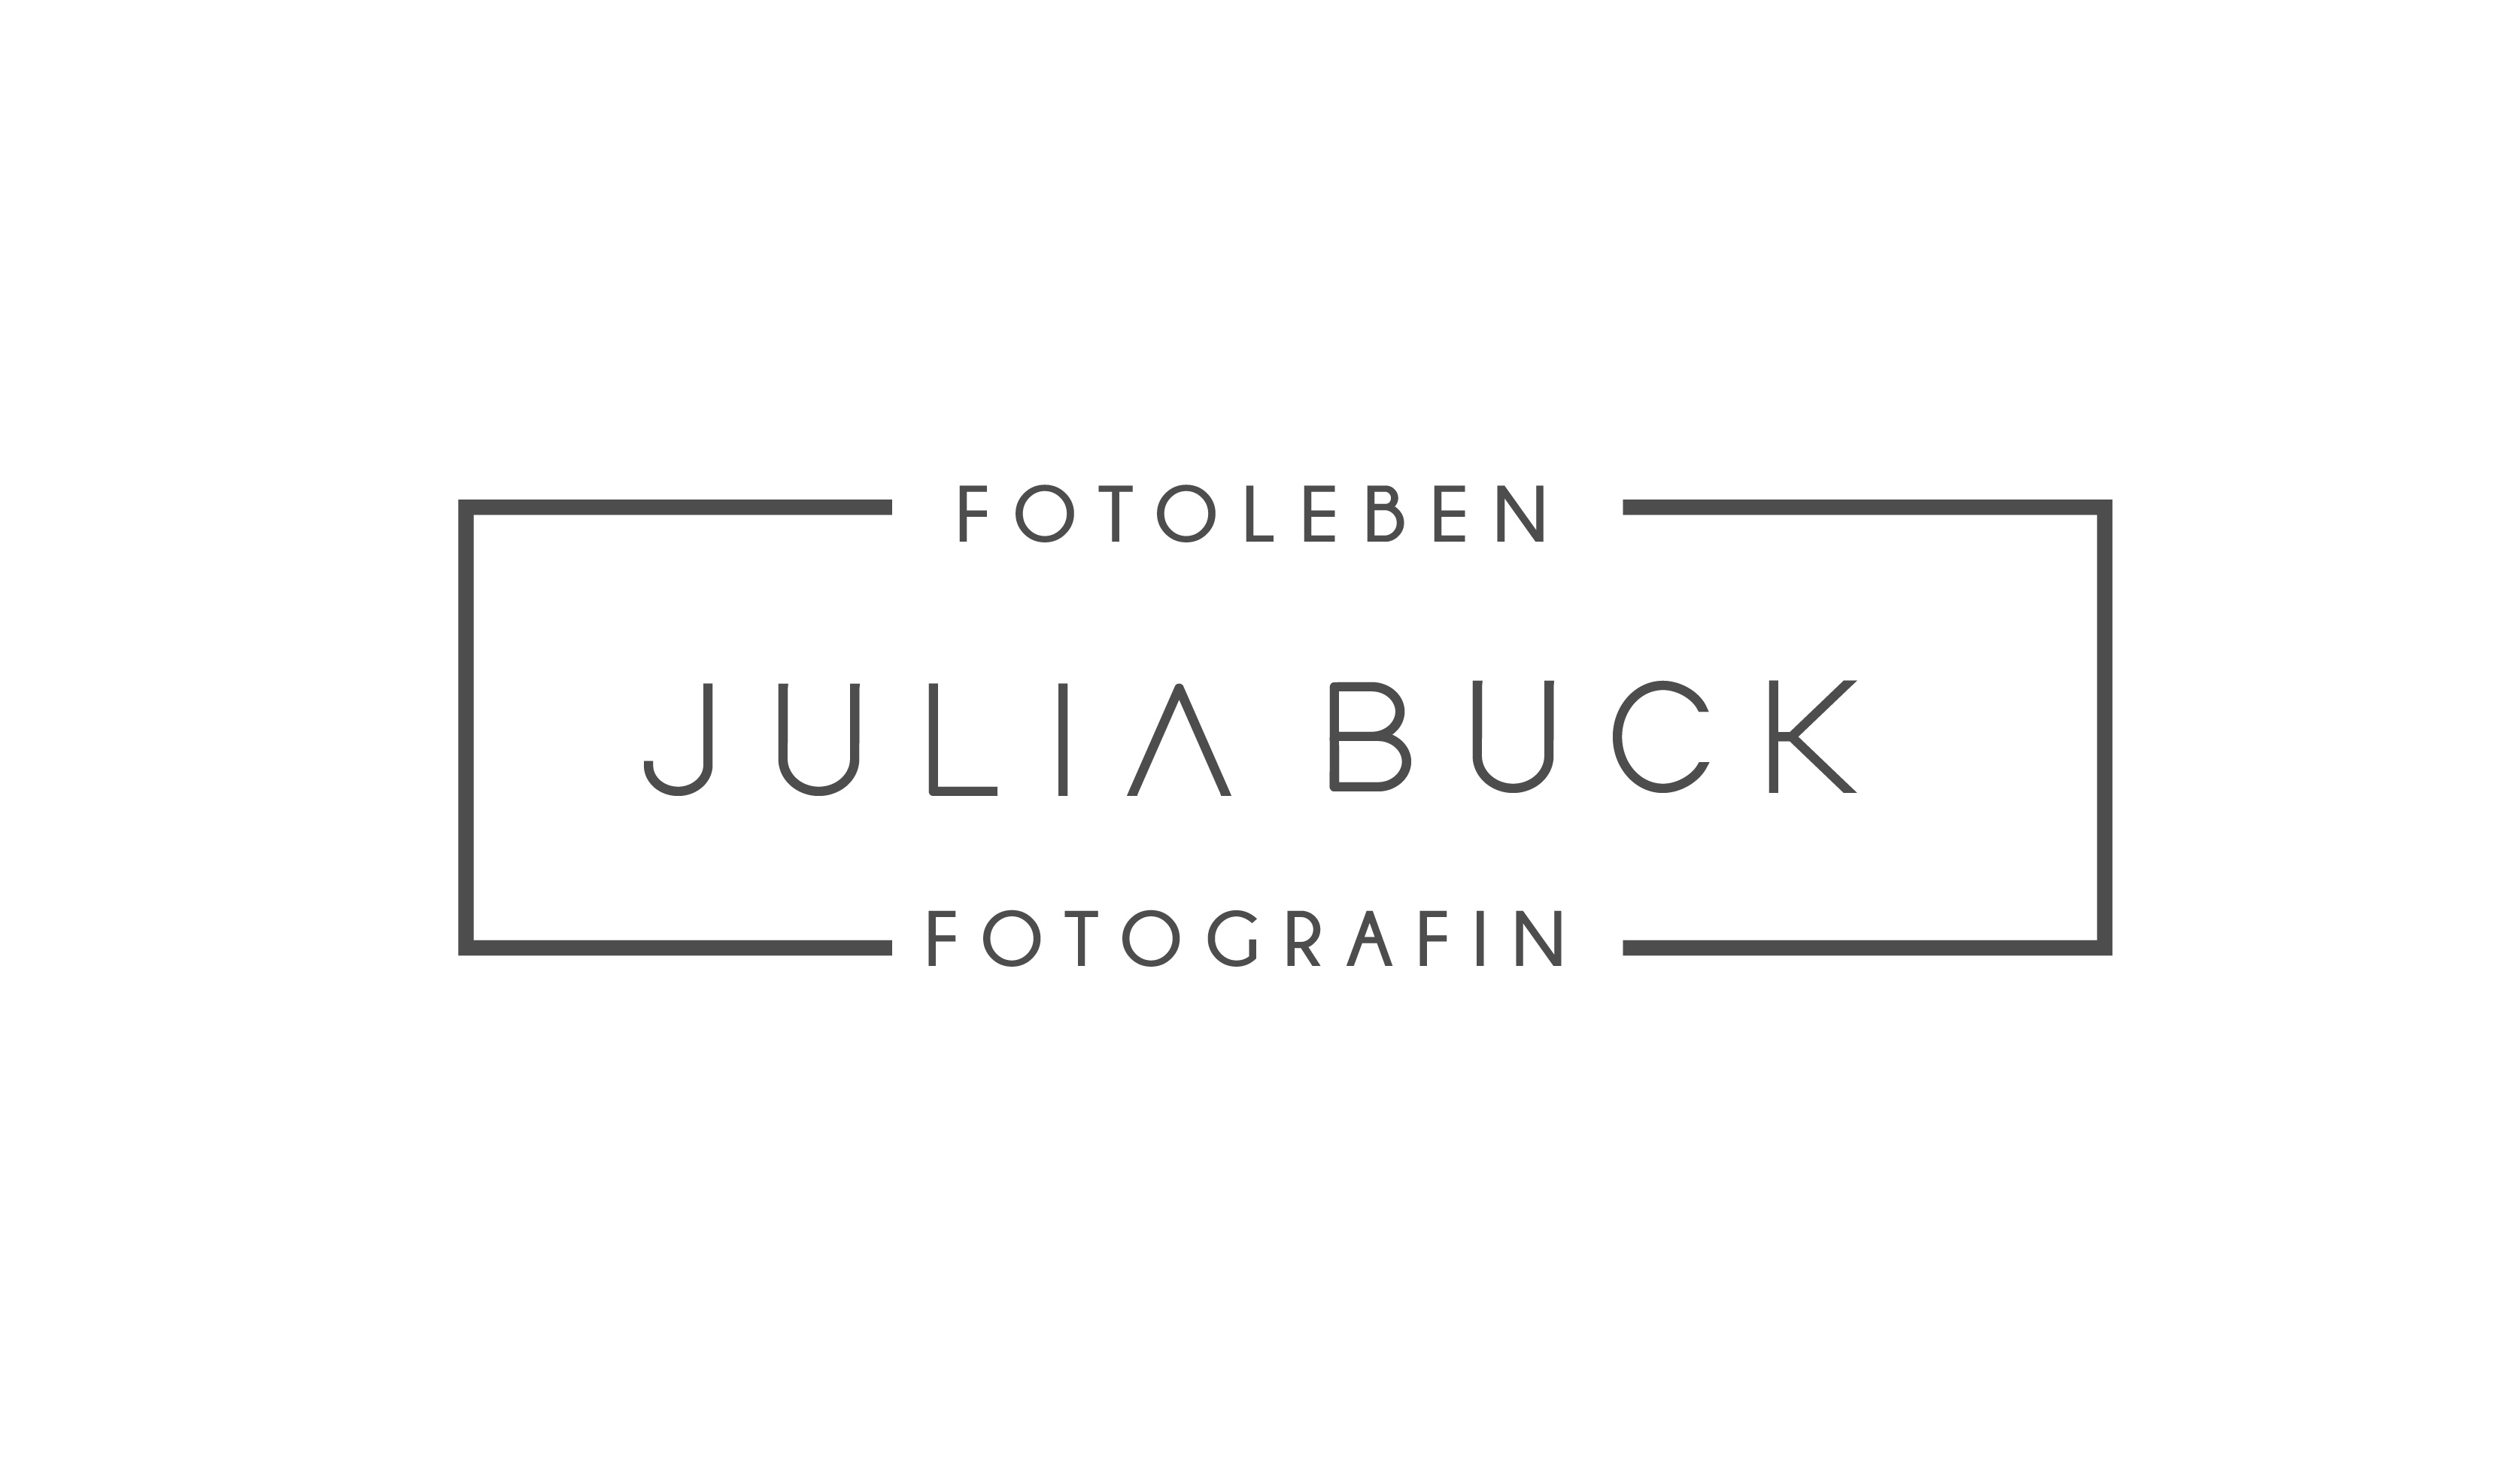 Fotoleben.com by Julia Buck